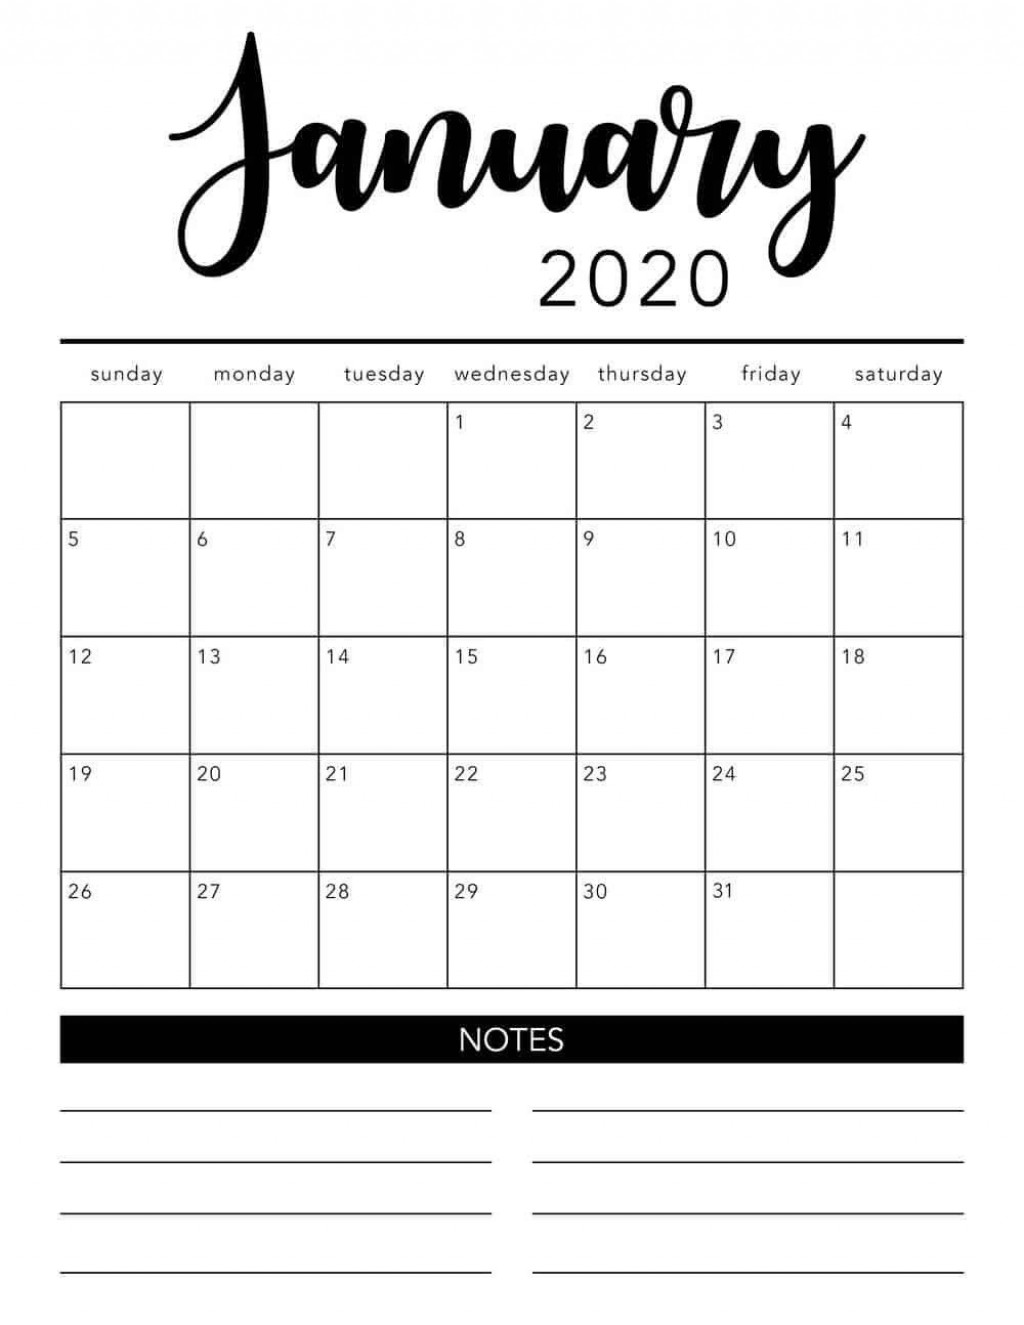 003 Singular Free 2020 Calendar Template Photo  Templates Monthly Excel Download Printable MayLarge